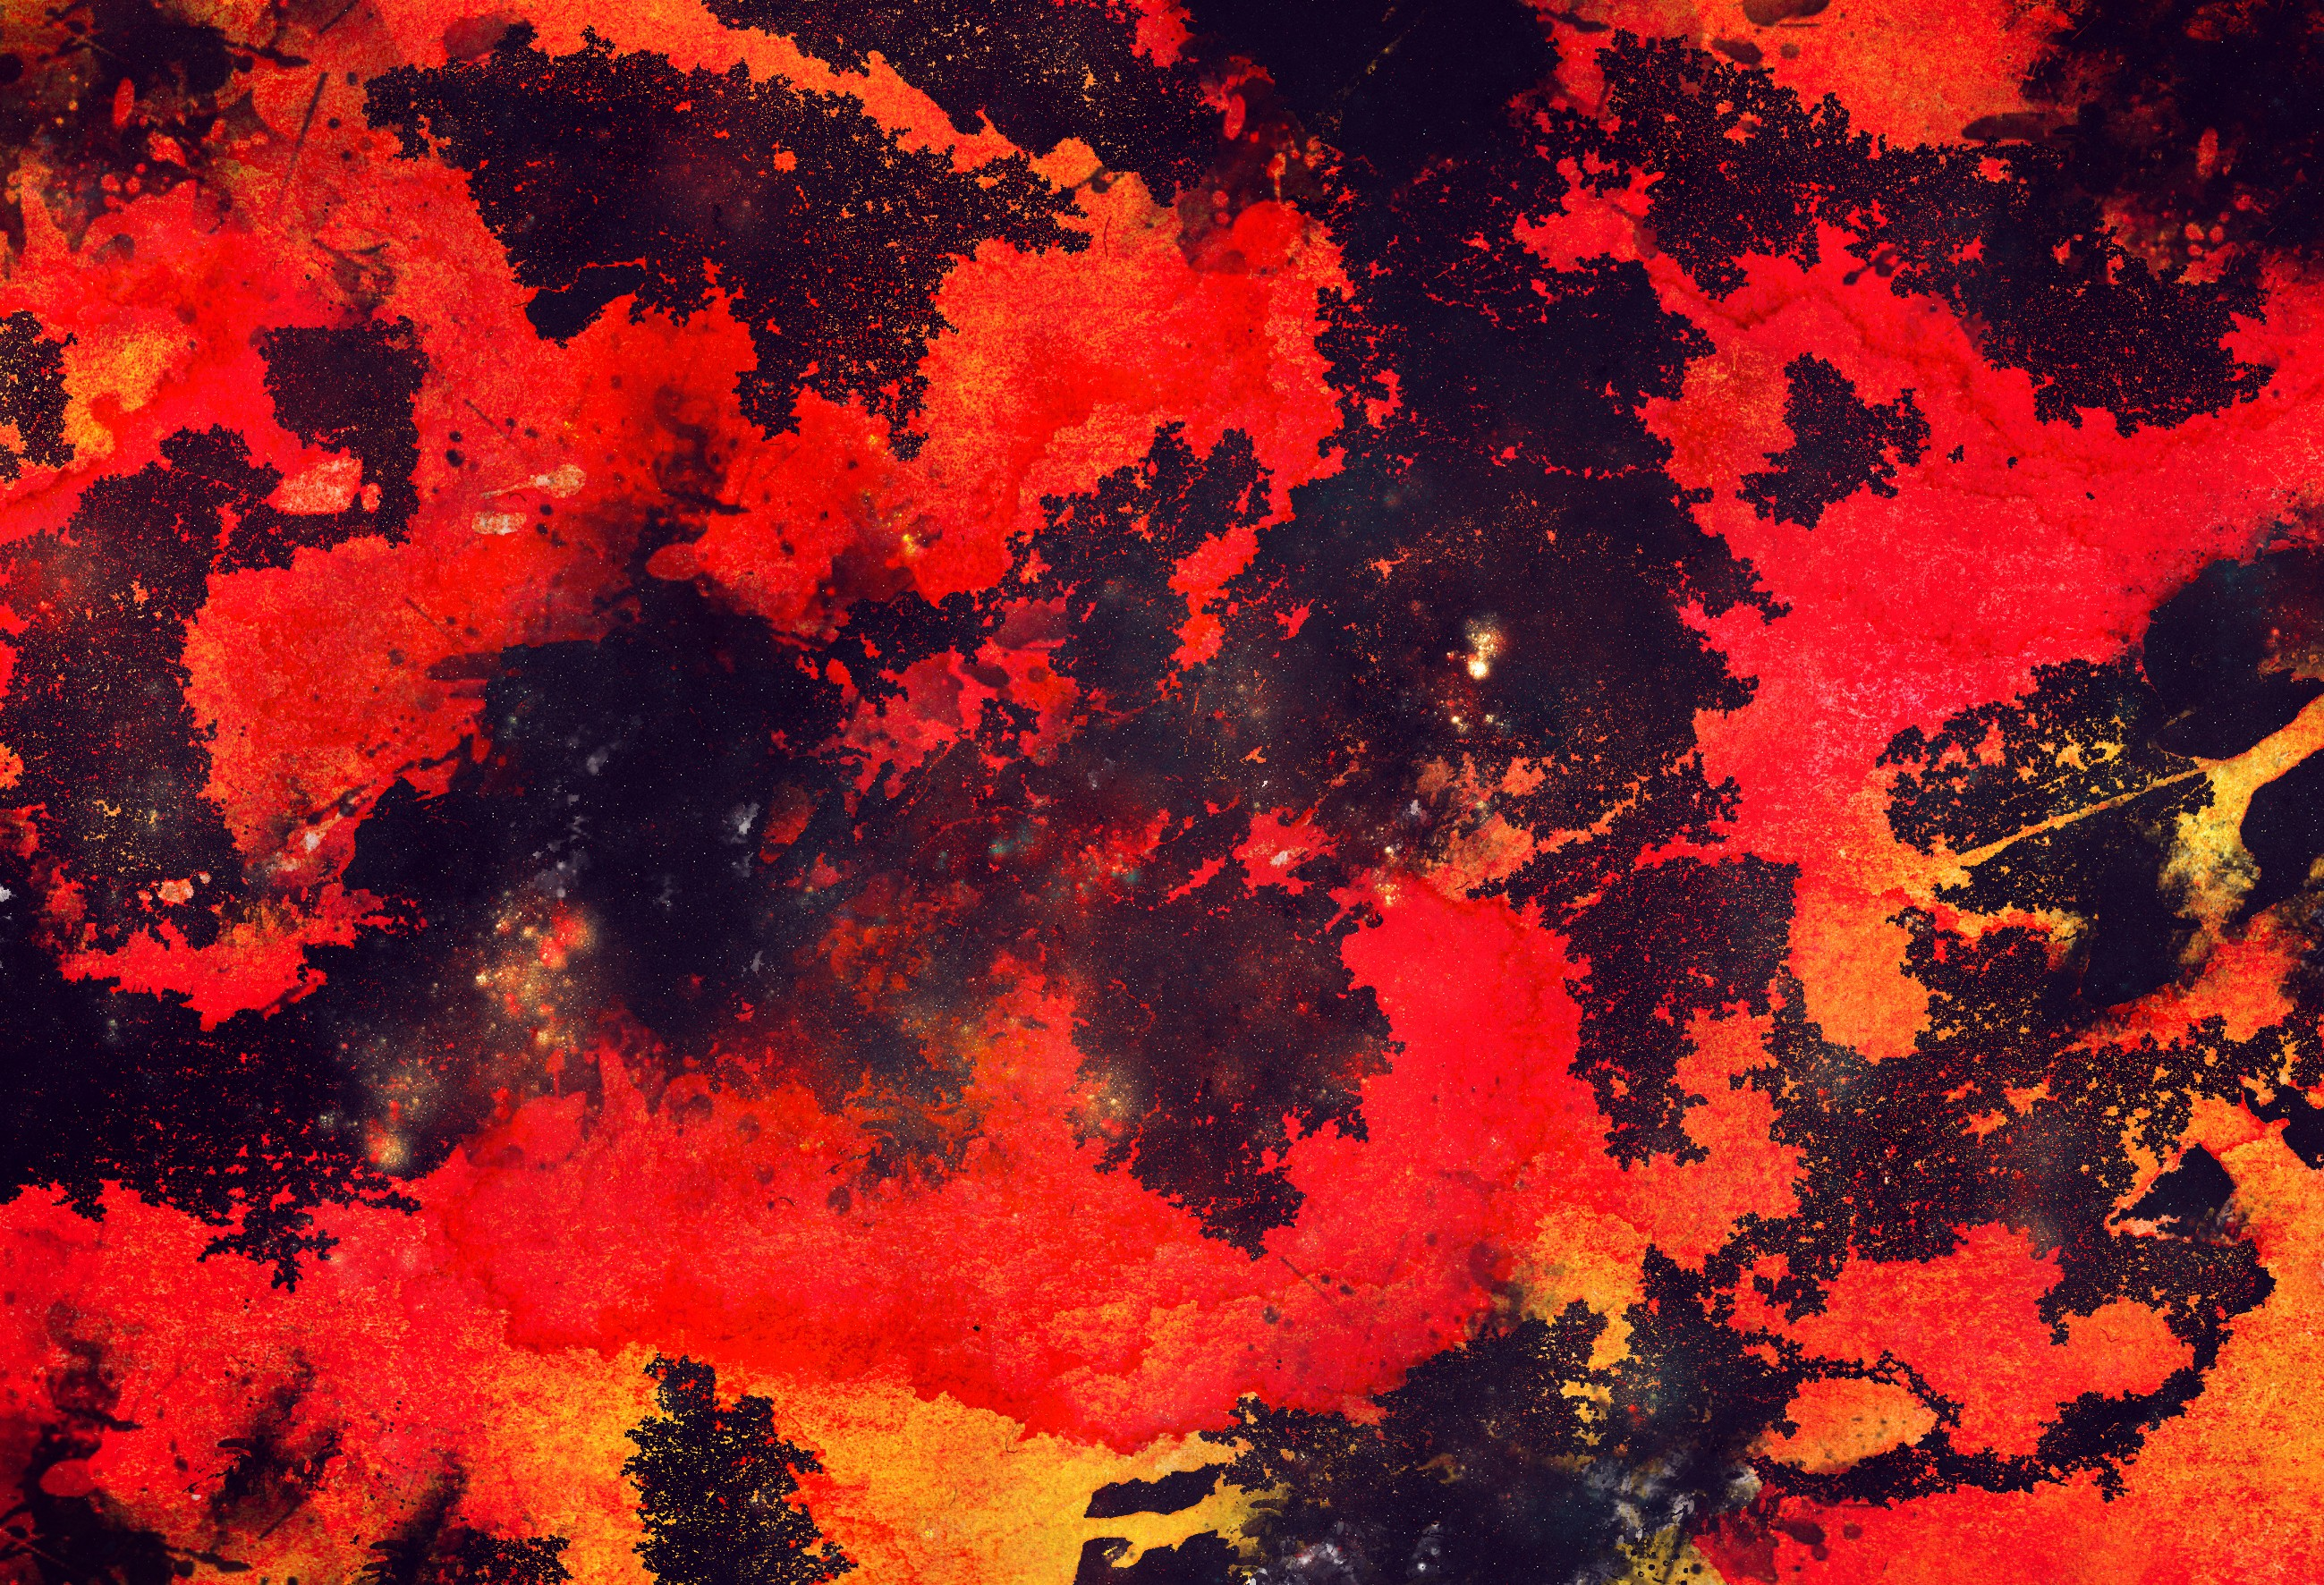 General 2598x1772 space colorful red grunge